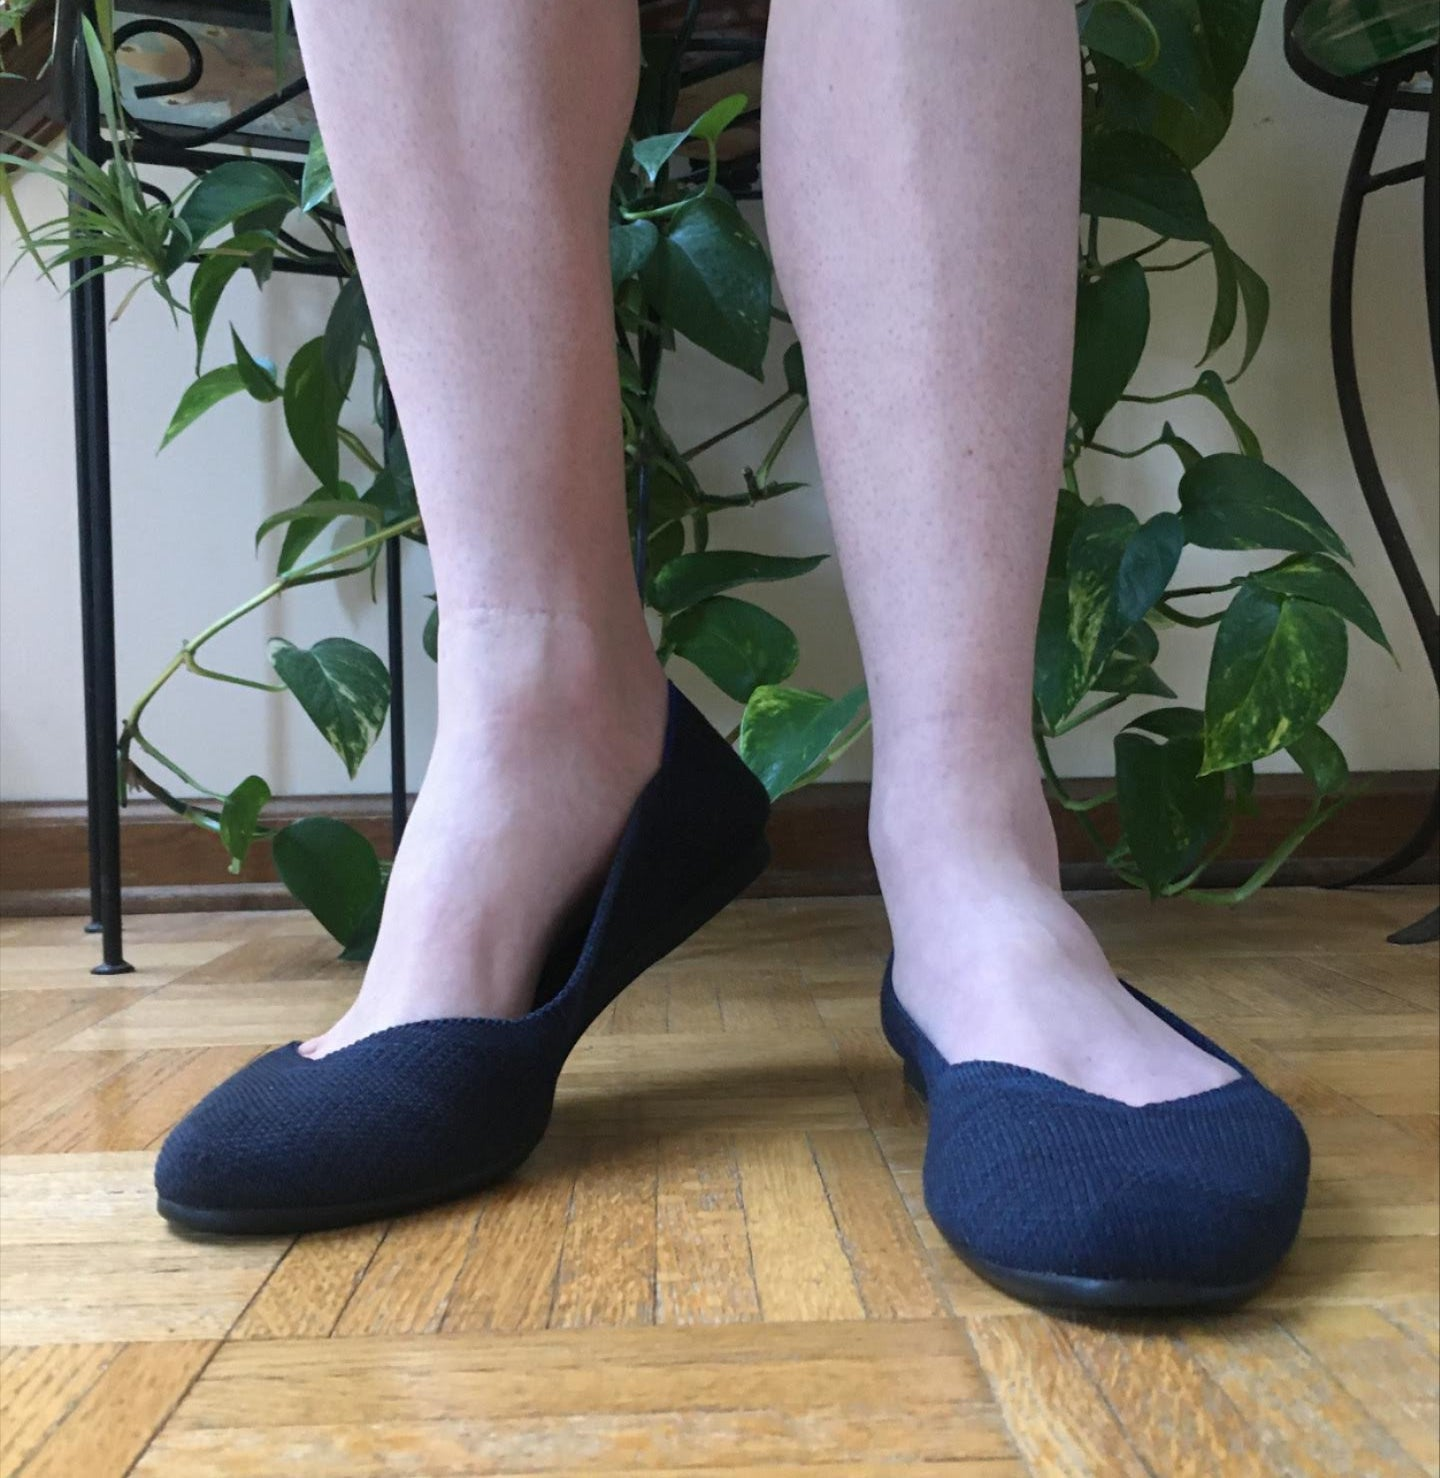 natalie in navy fabric round-toe flats